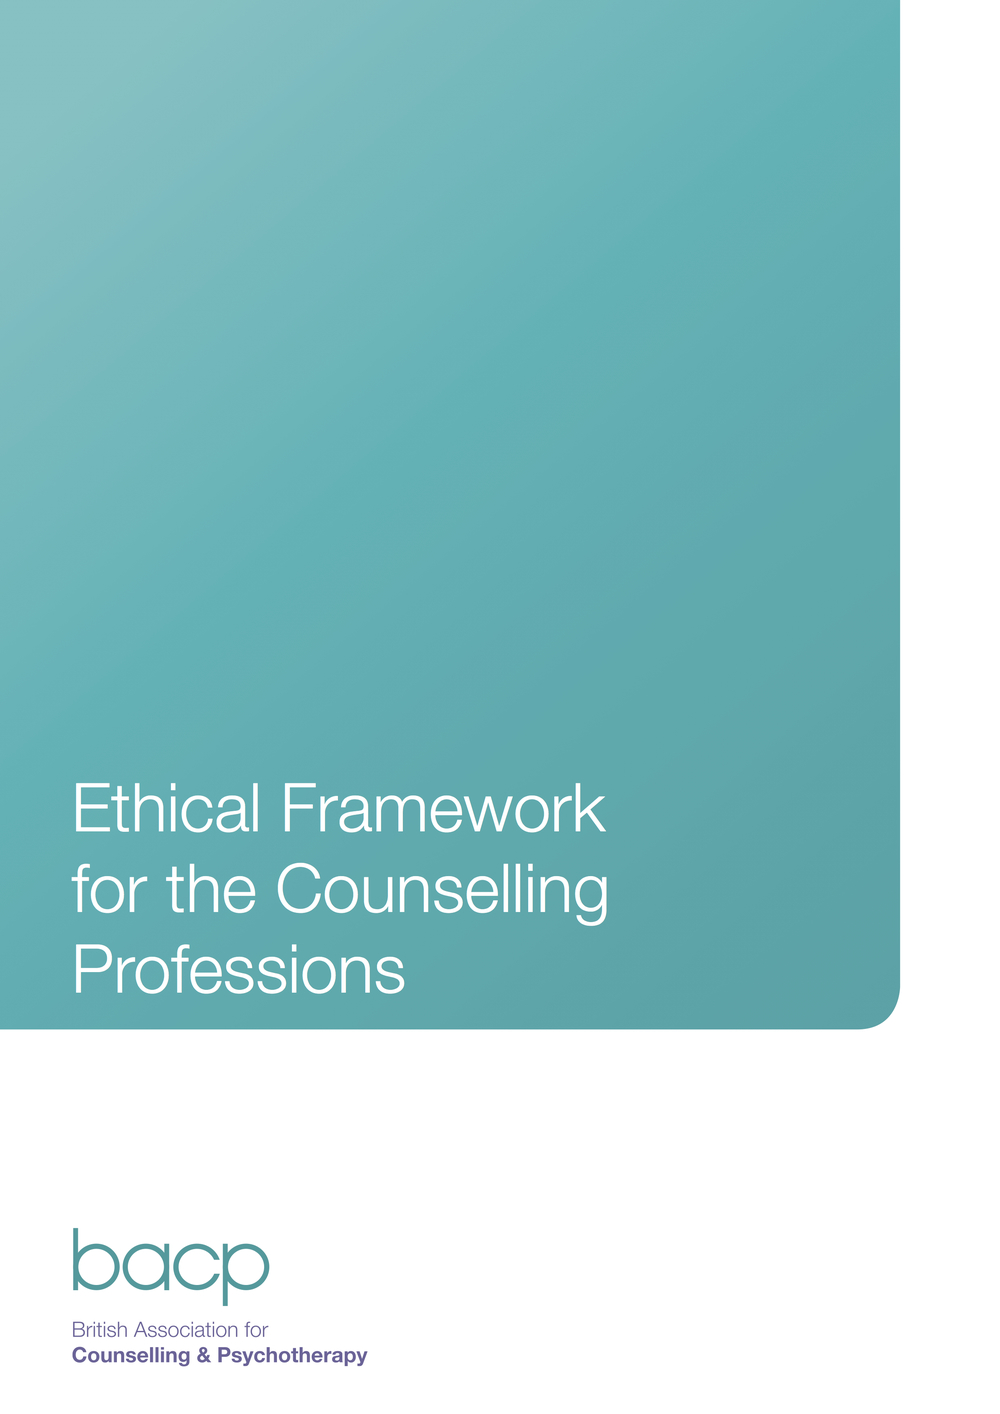 bacp ethical framework picture for page